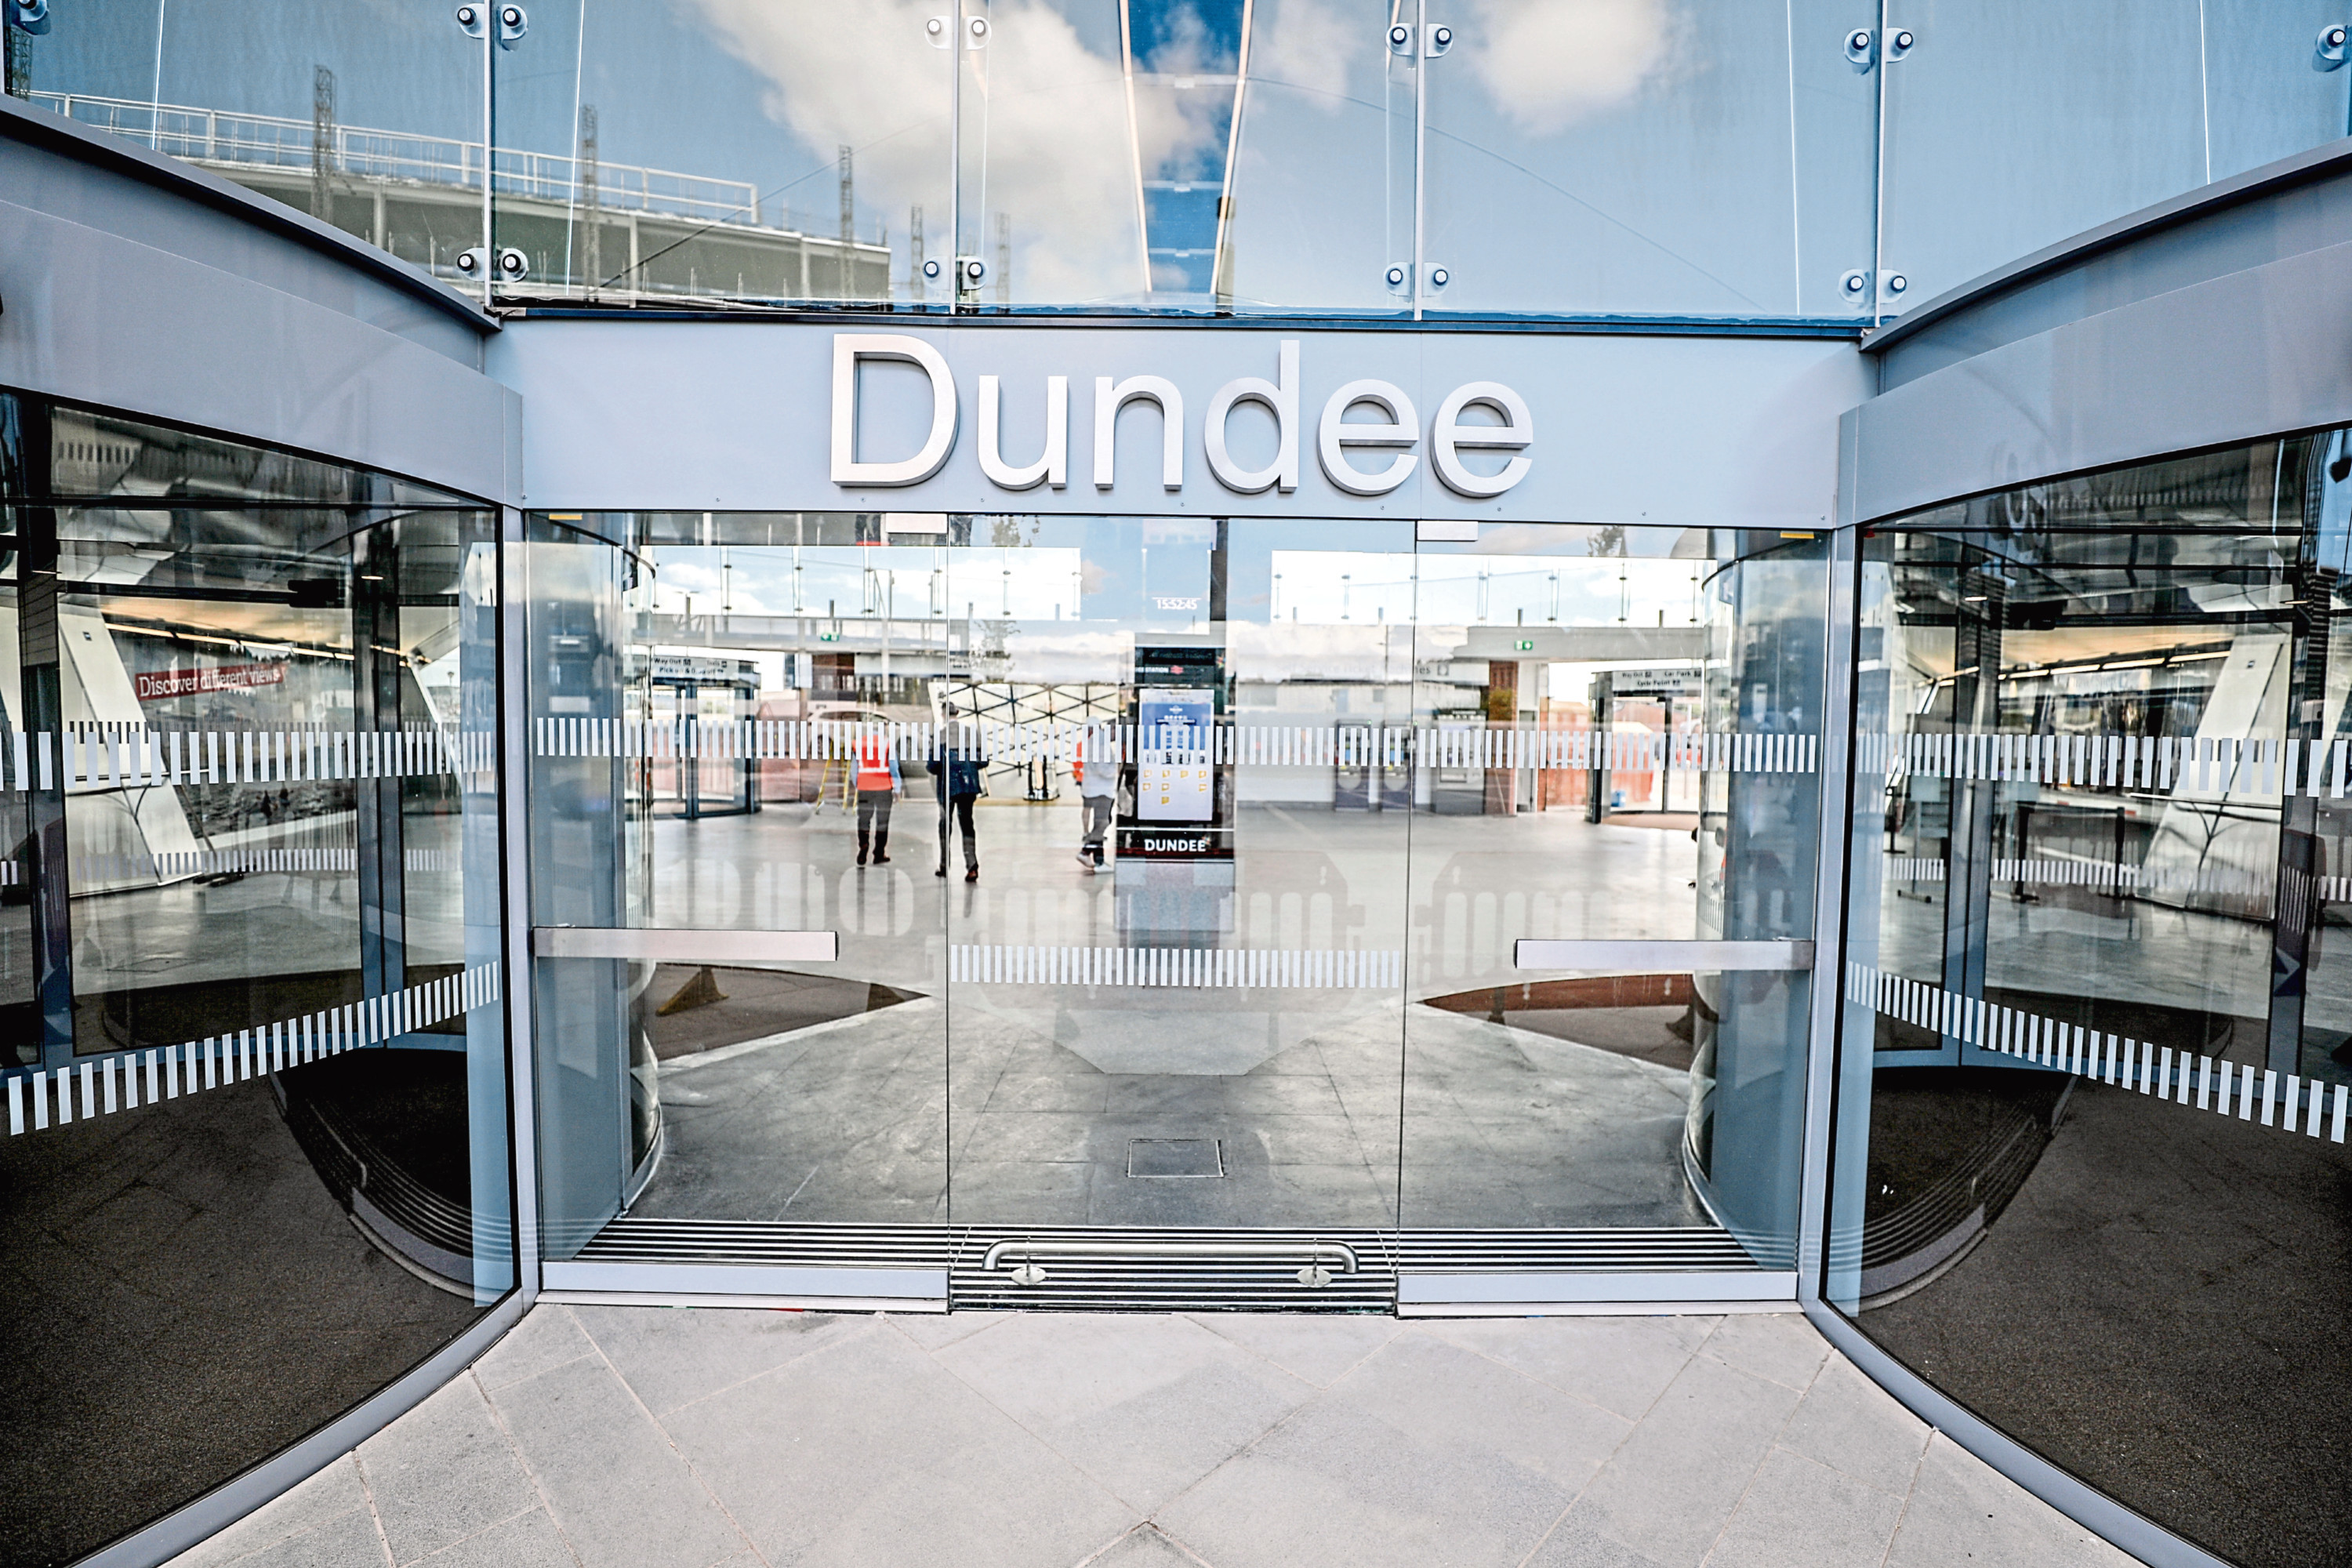 Dundee Railway Station entrance